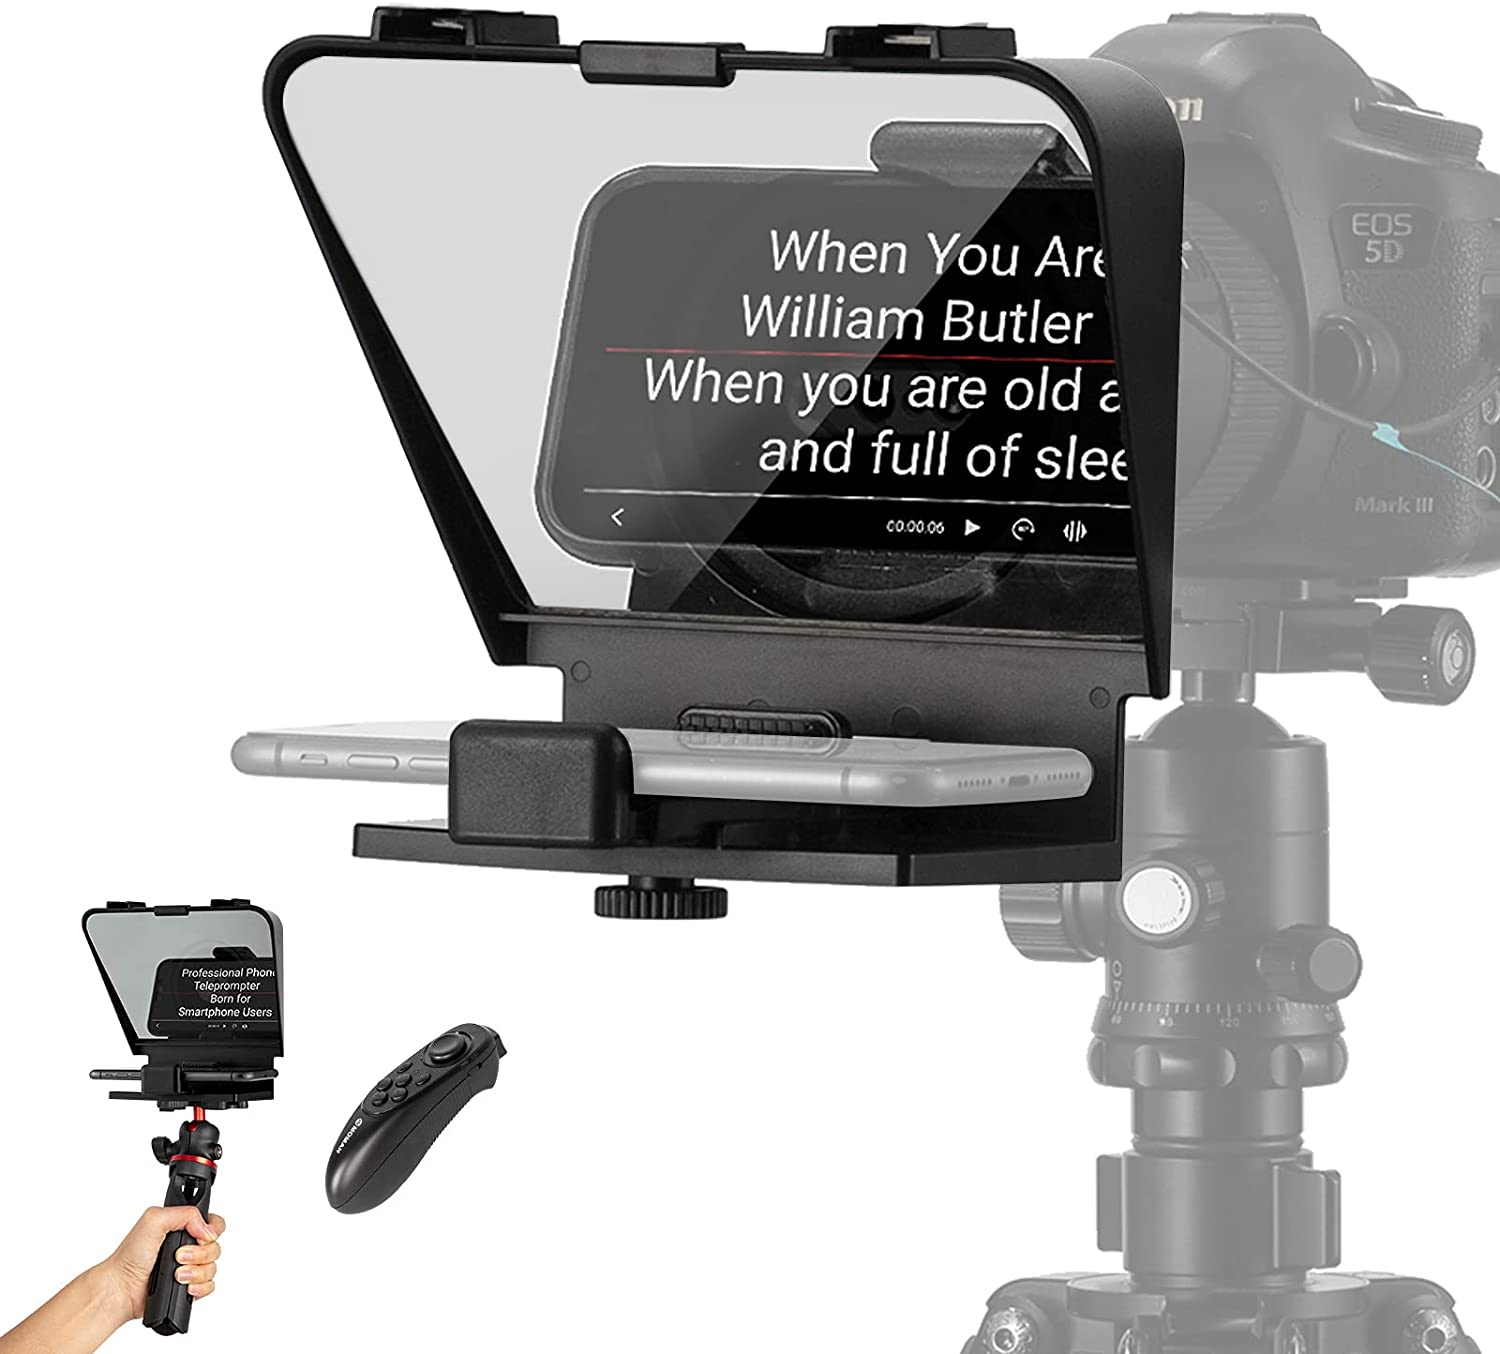 Smartphone Teleprompter Kit, MOMAN Portable Teleprompters for iPhone Huawei Phone DSLR Recording with 70/30 Beam Split Glass, Remote Control & Tripod Set, Moman-Smartphone-iPhone-Teleprompter-Kit